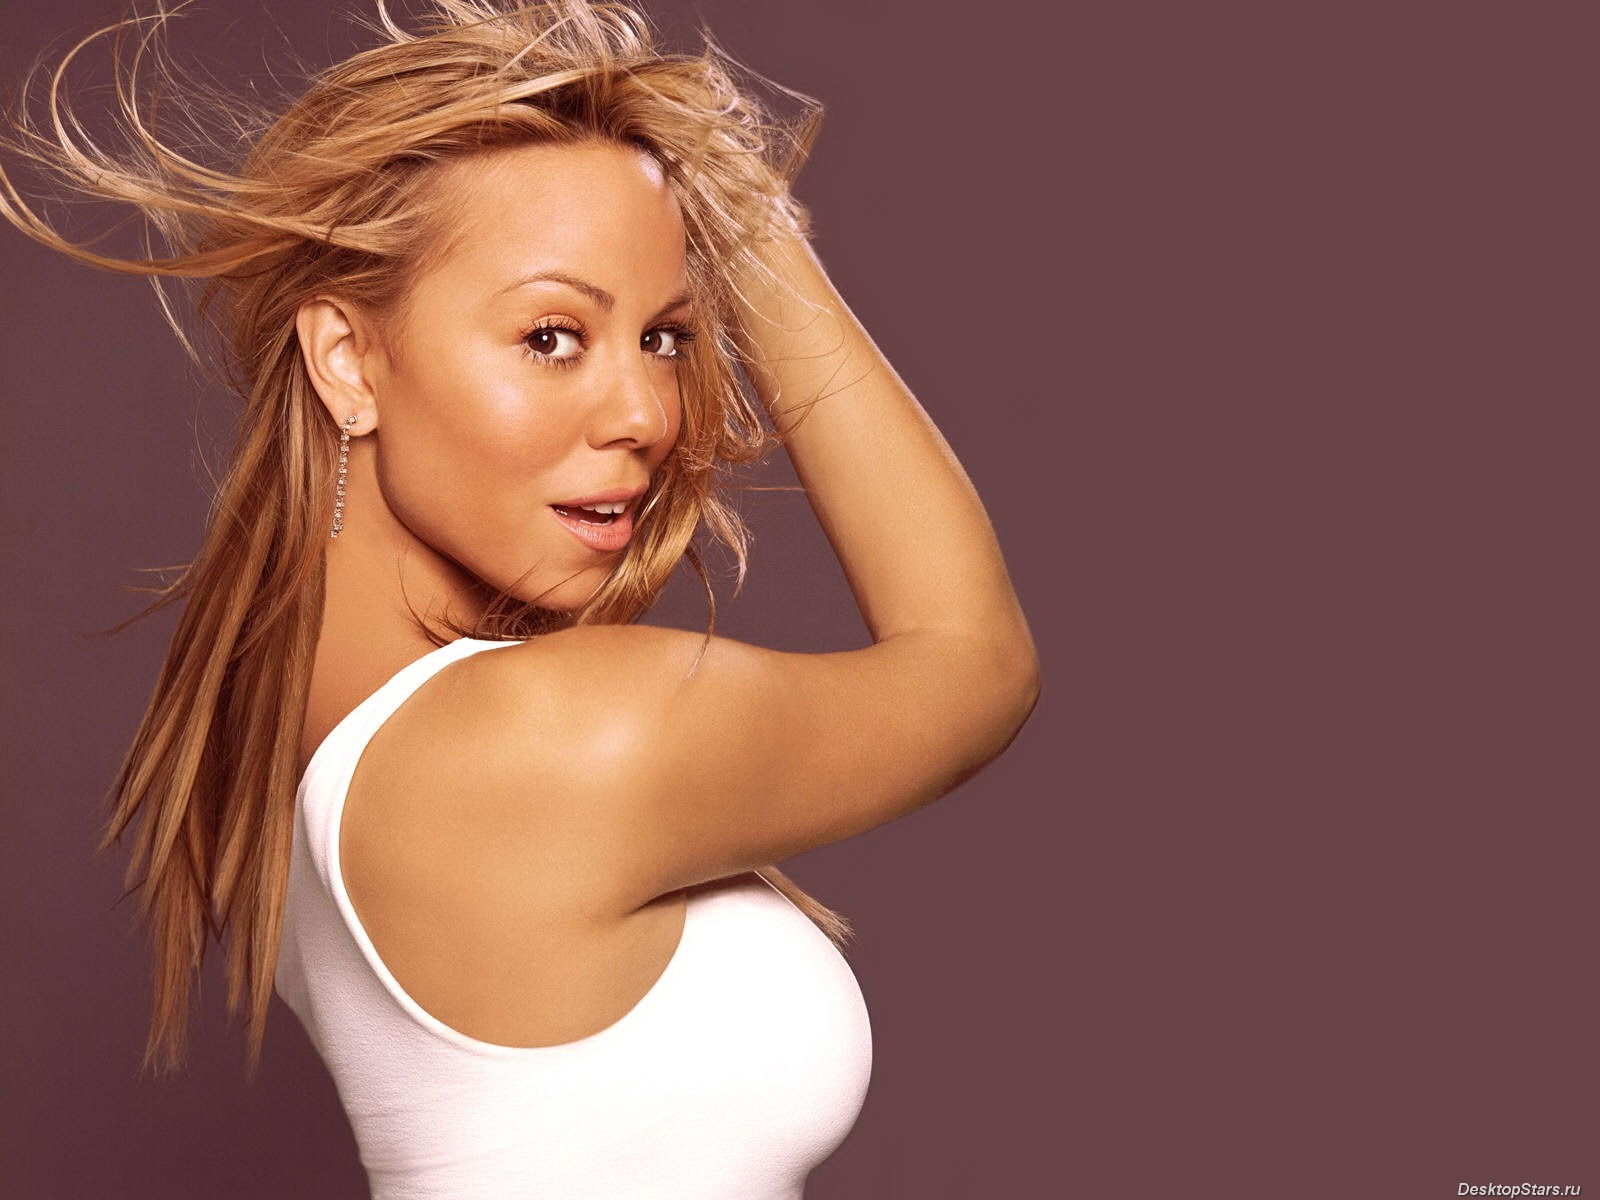 Mariah Carey #031 - 1600x1200 Wallpapers Pictures Photos Images